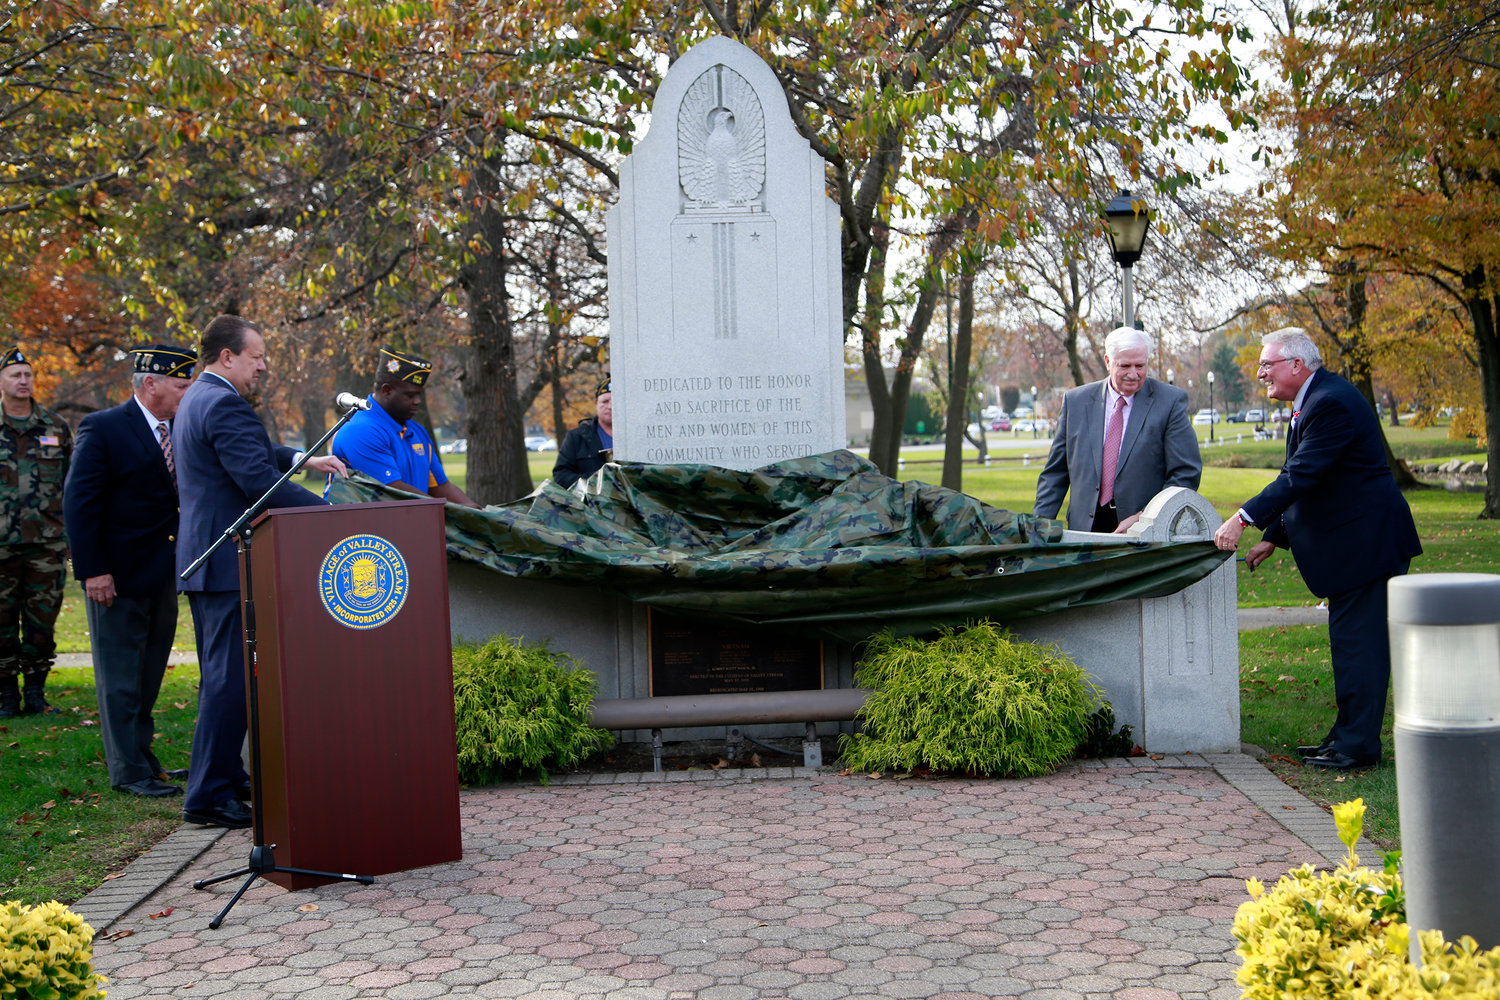 Village officials unveiled on Nov. 11 Valley Stream native Army First Lt. Robert Mason's name, which was recently affixed to the Valley Stream's Memorial Monument for Veterans Day ceremony. Mason was killed in the Vietnam War.